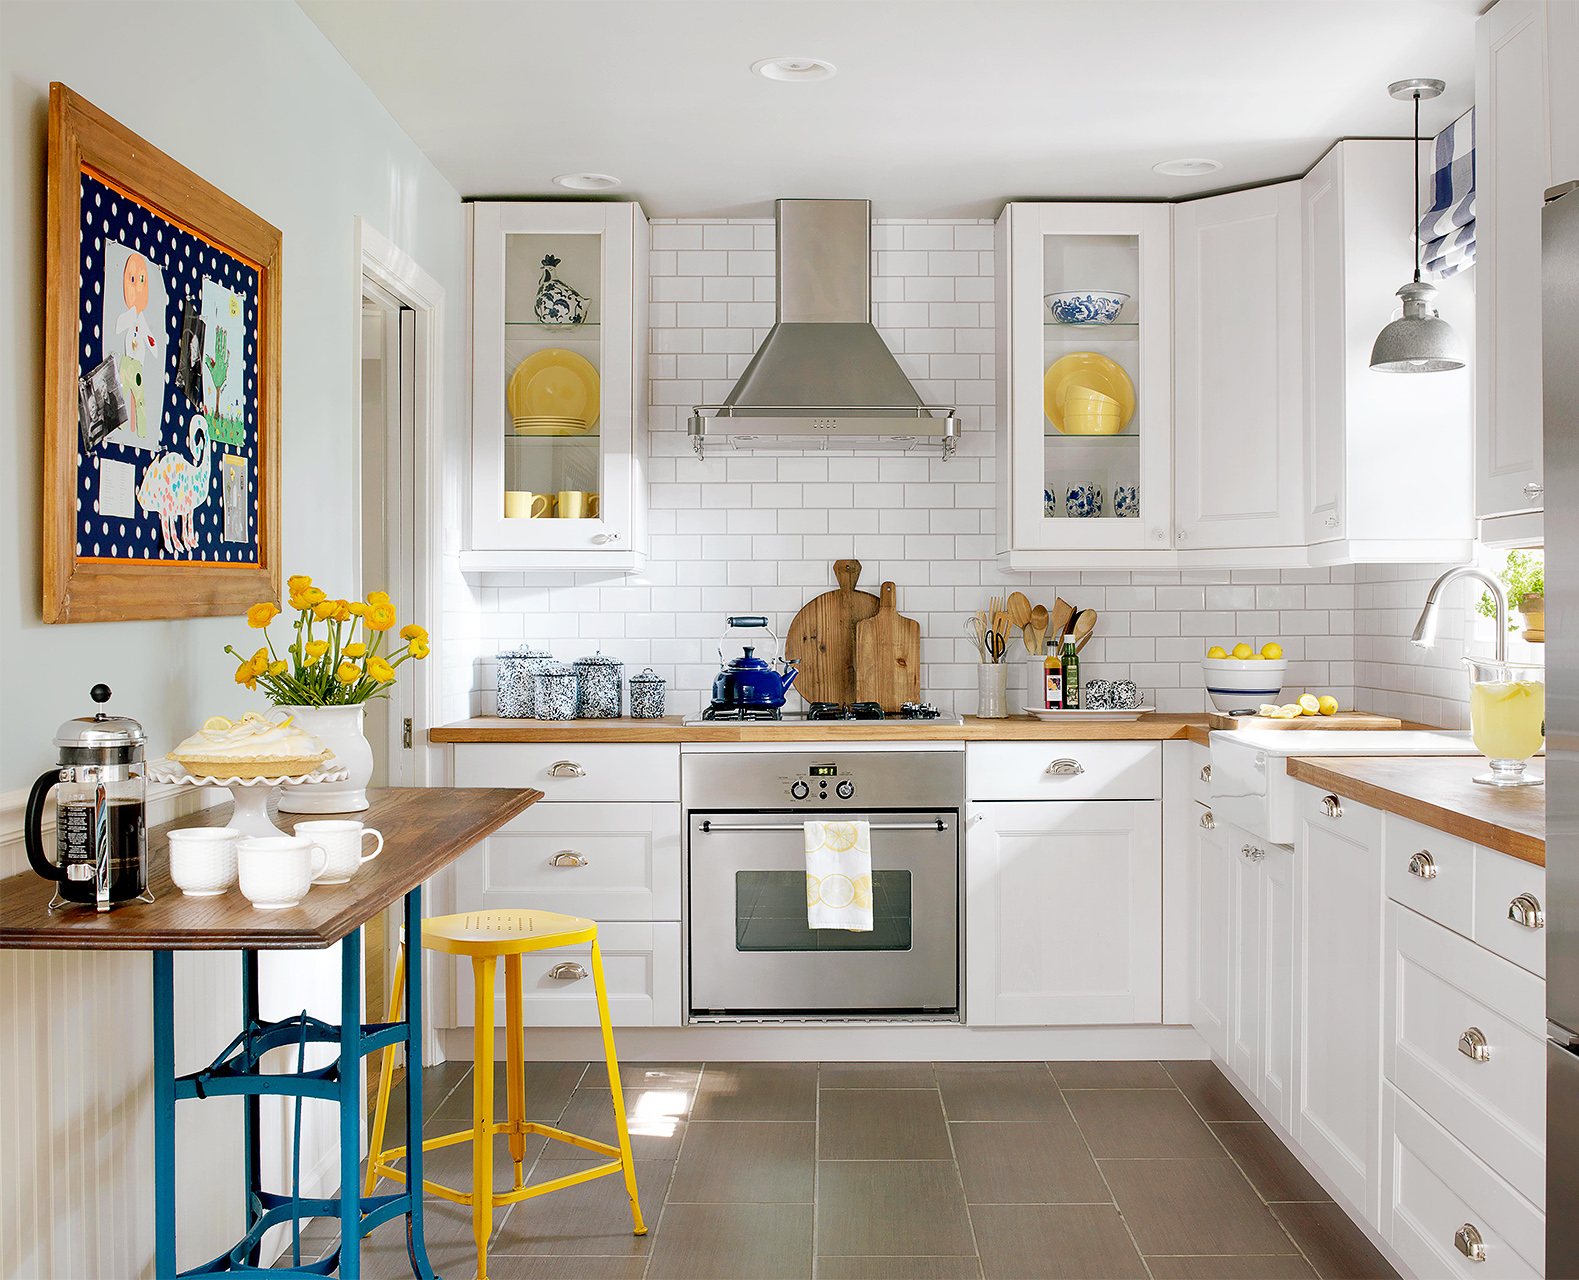 Make a Small Kitchen Look Larger | Better Homes & Gardens on Best Small Kitchens  id=25078